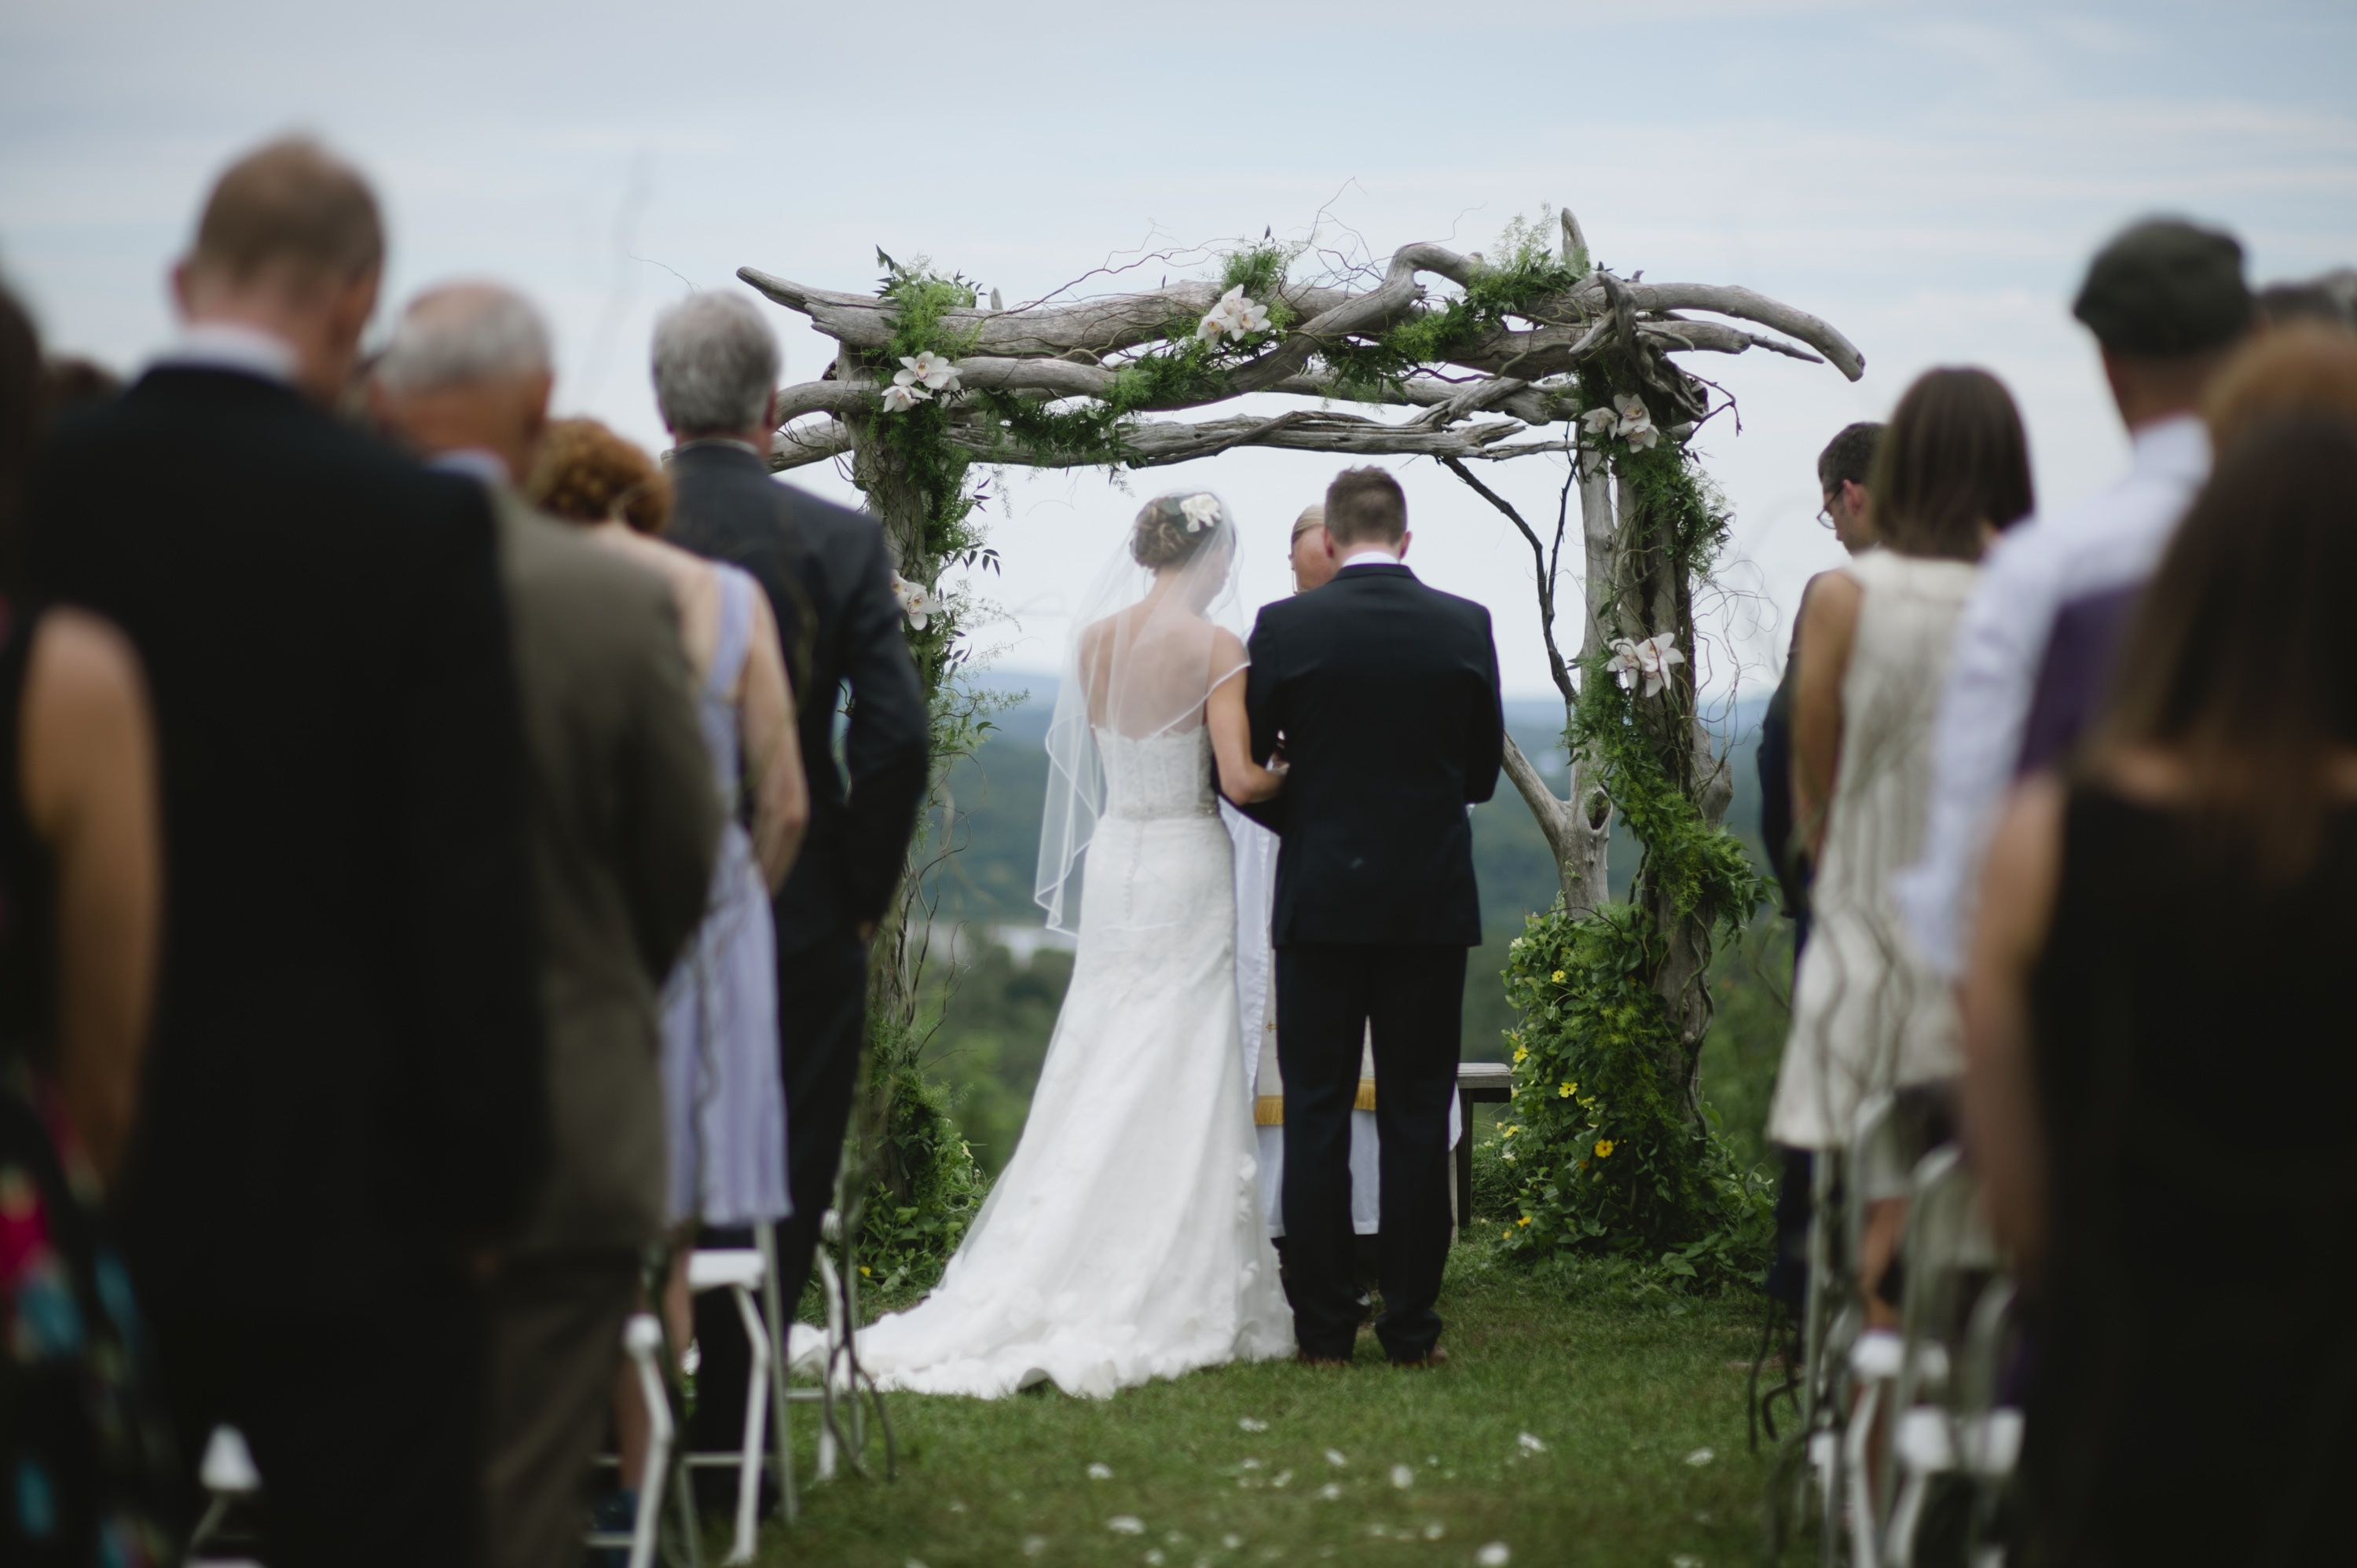 Find Wedding Planner New York Eventsbymissyco Is One Of The Best Solutions For